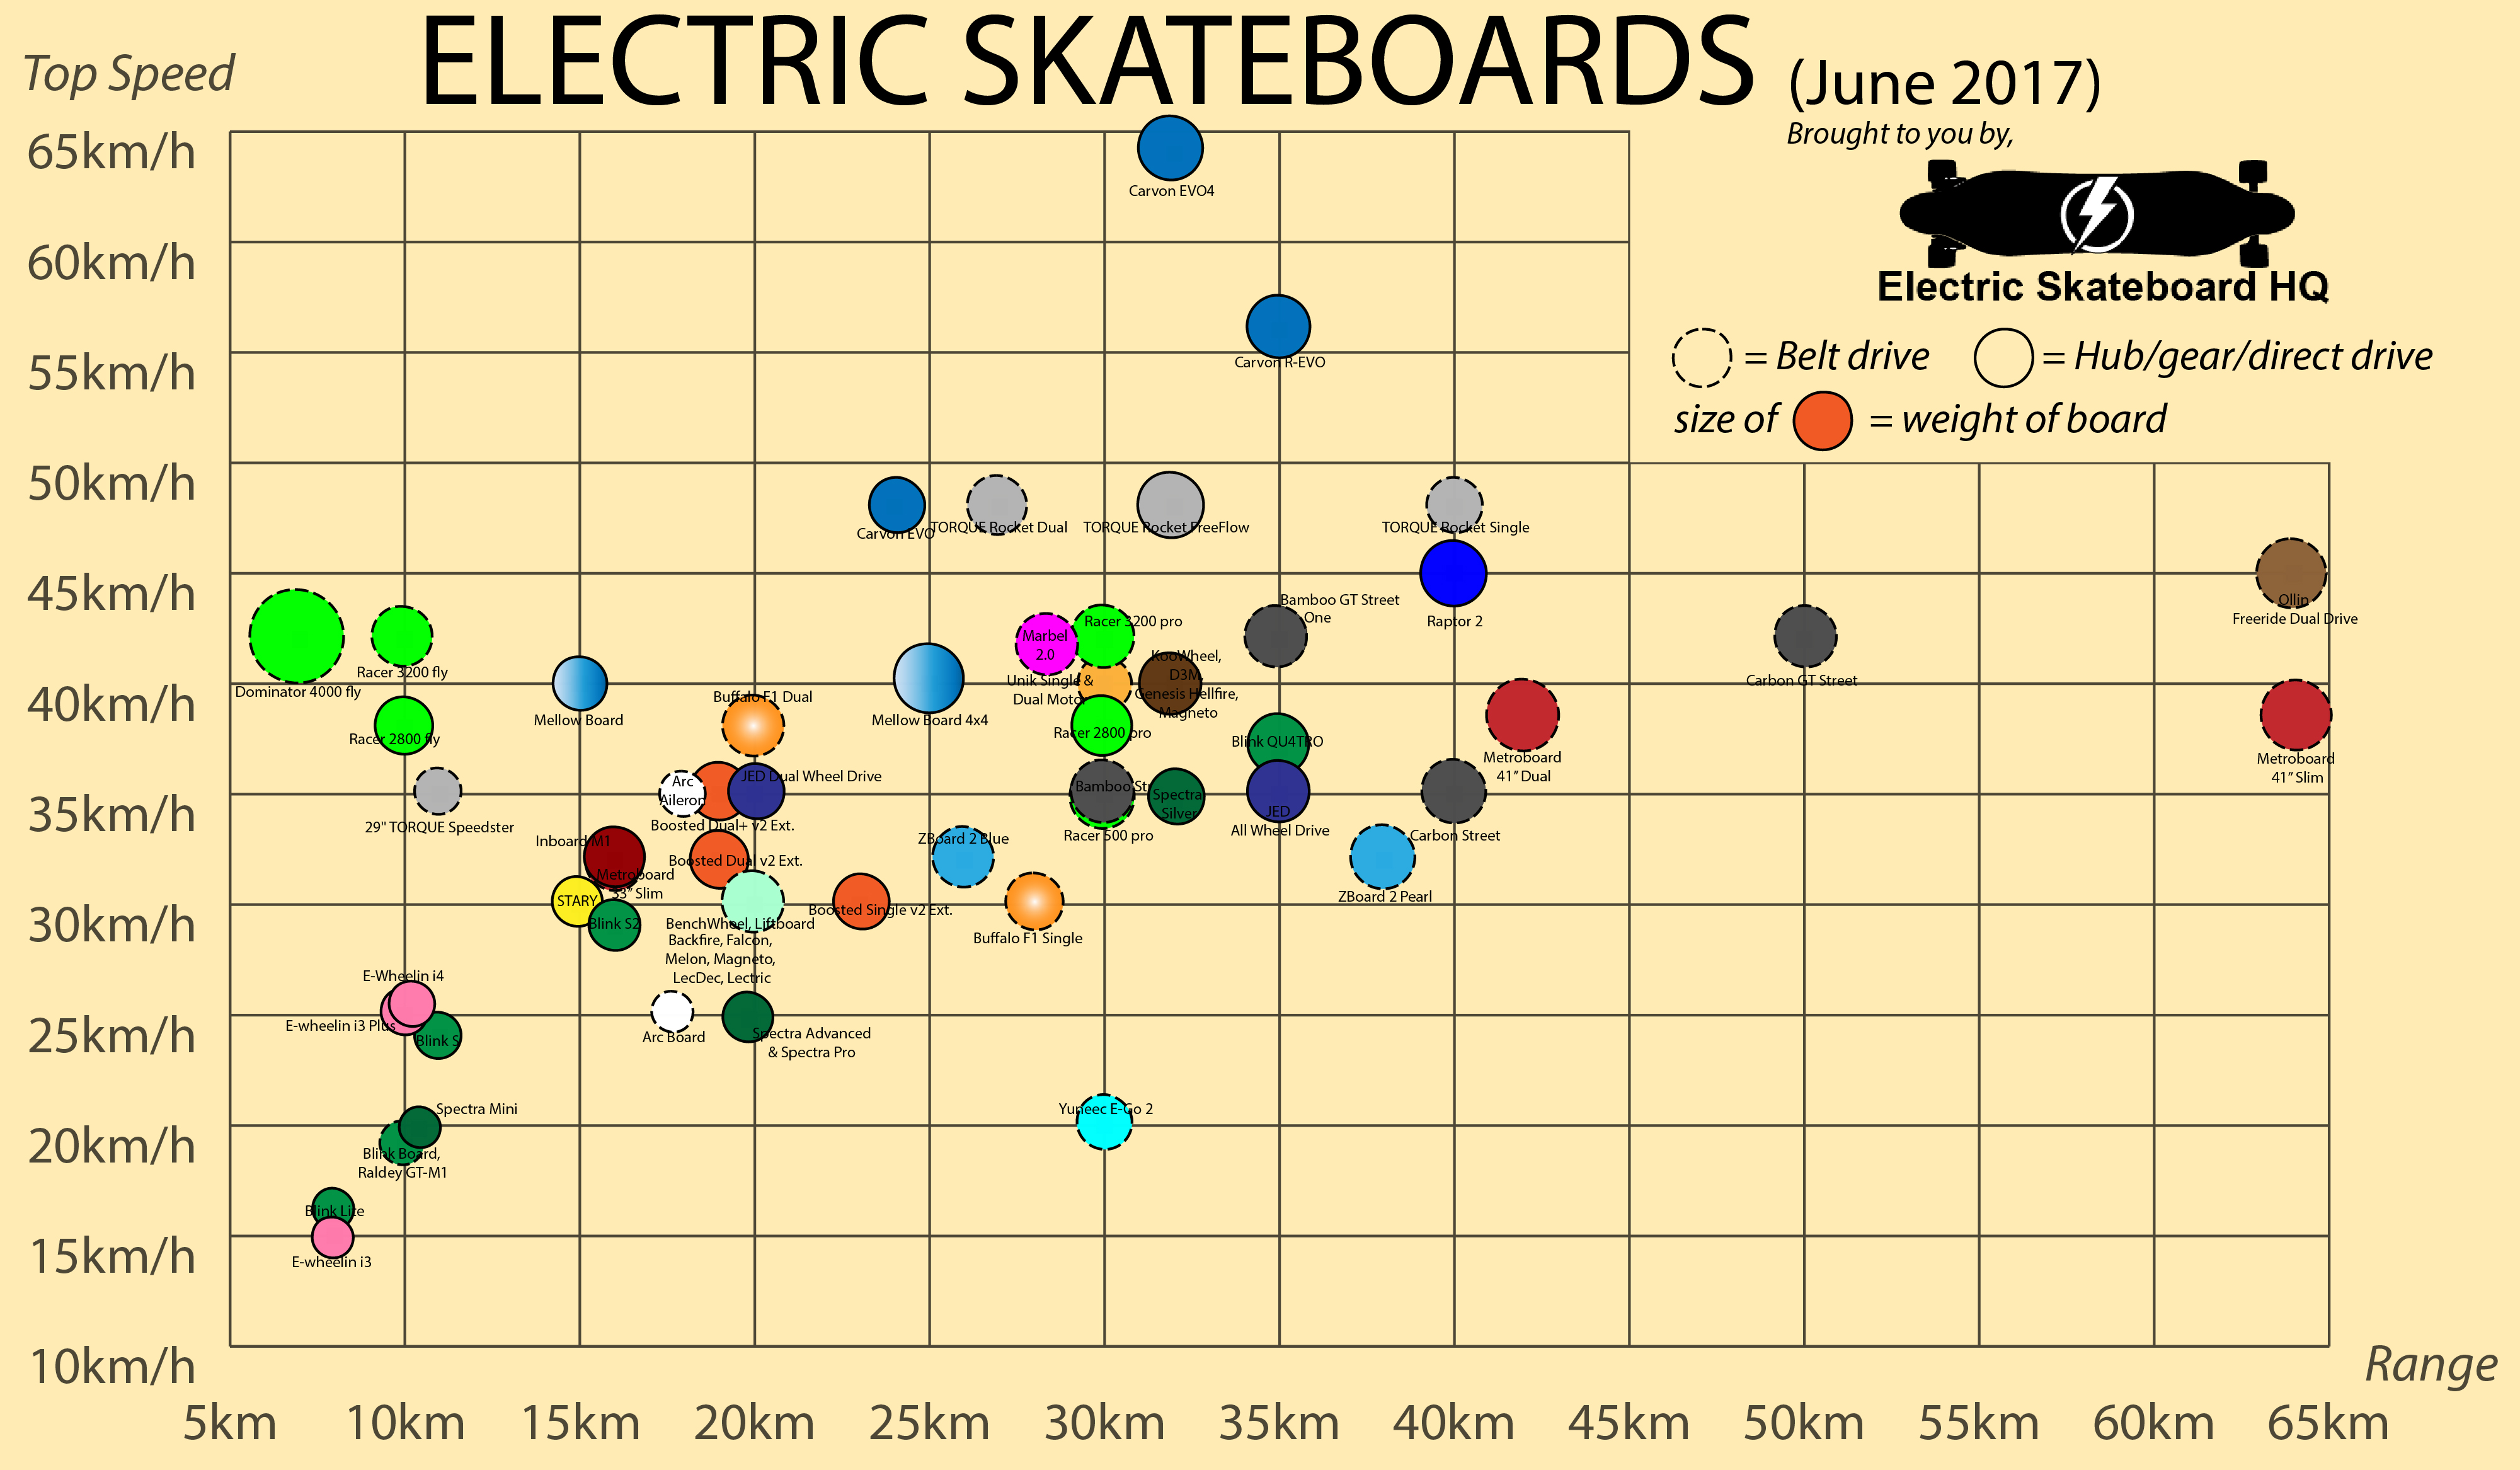 Electric Skateboard Comparison Chart June 2017  Electric Skateboard HQ